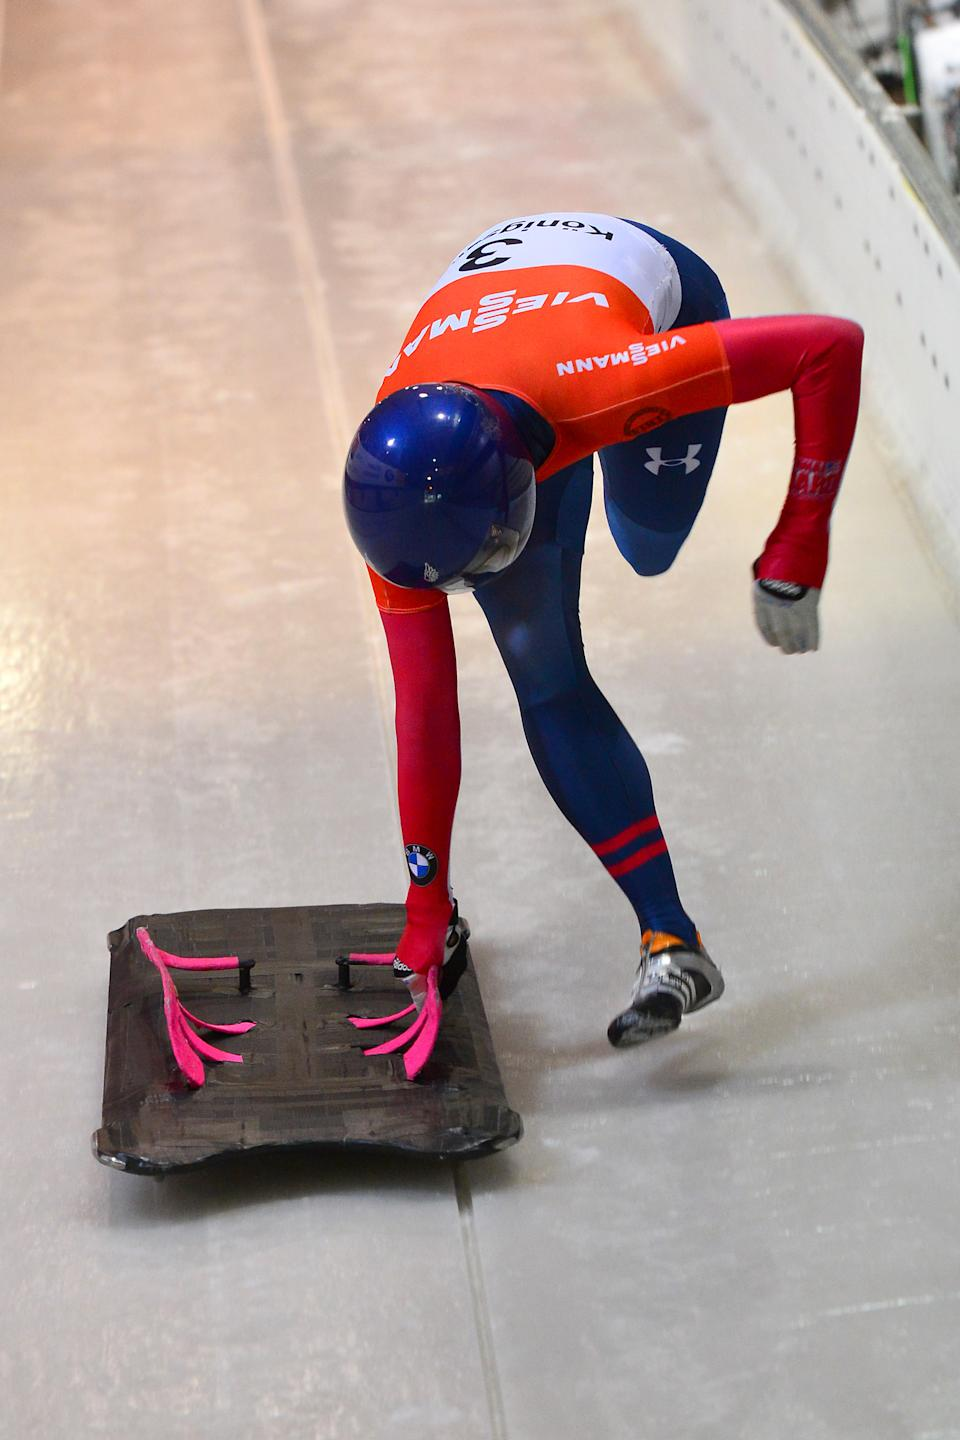 Noelle Pikus-Pace from the United States starts during her first run of the women's Skeleton World Cup race in Koenigssee, Germany, Friday, Jan. 11, 2013. (AP Photo/Kerstin Joensson)